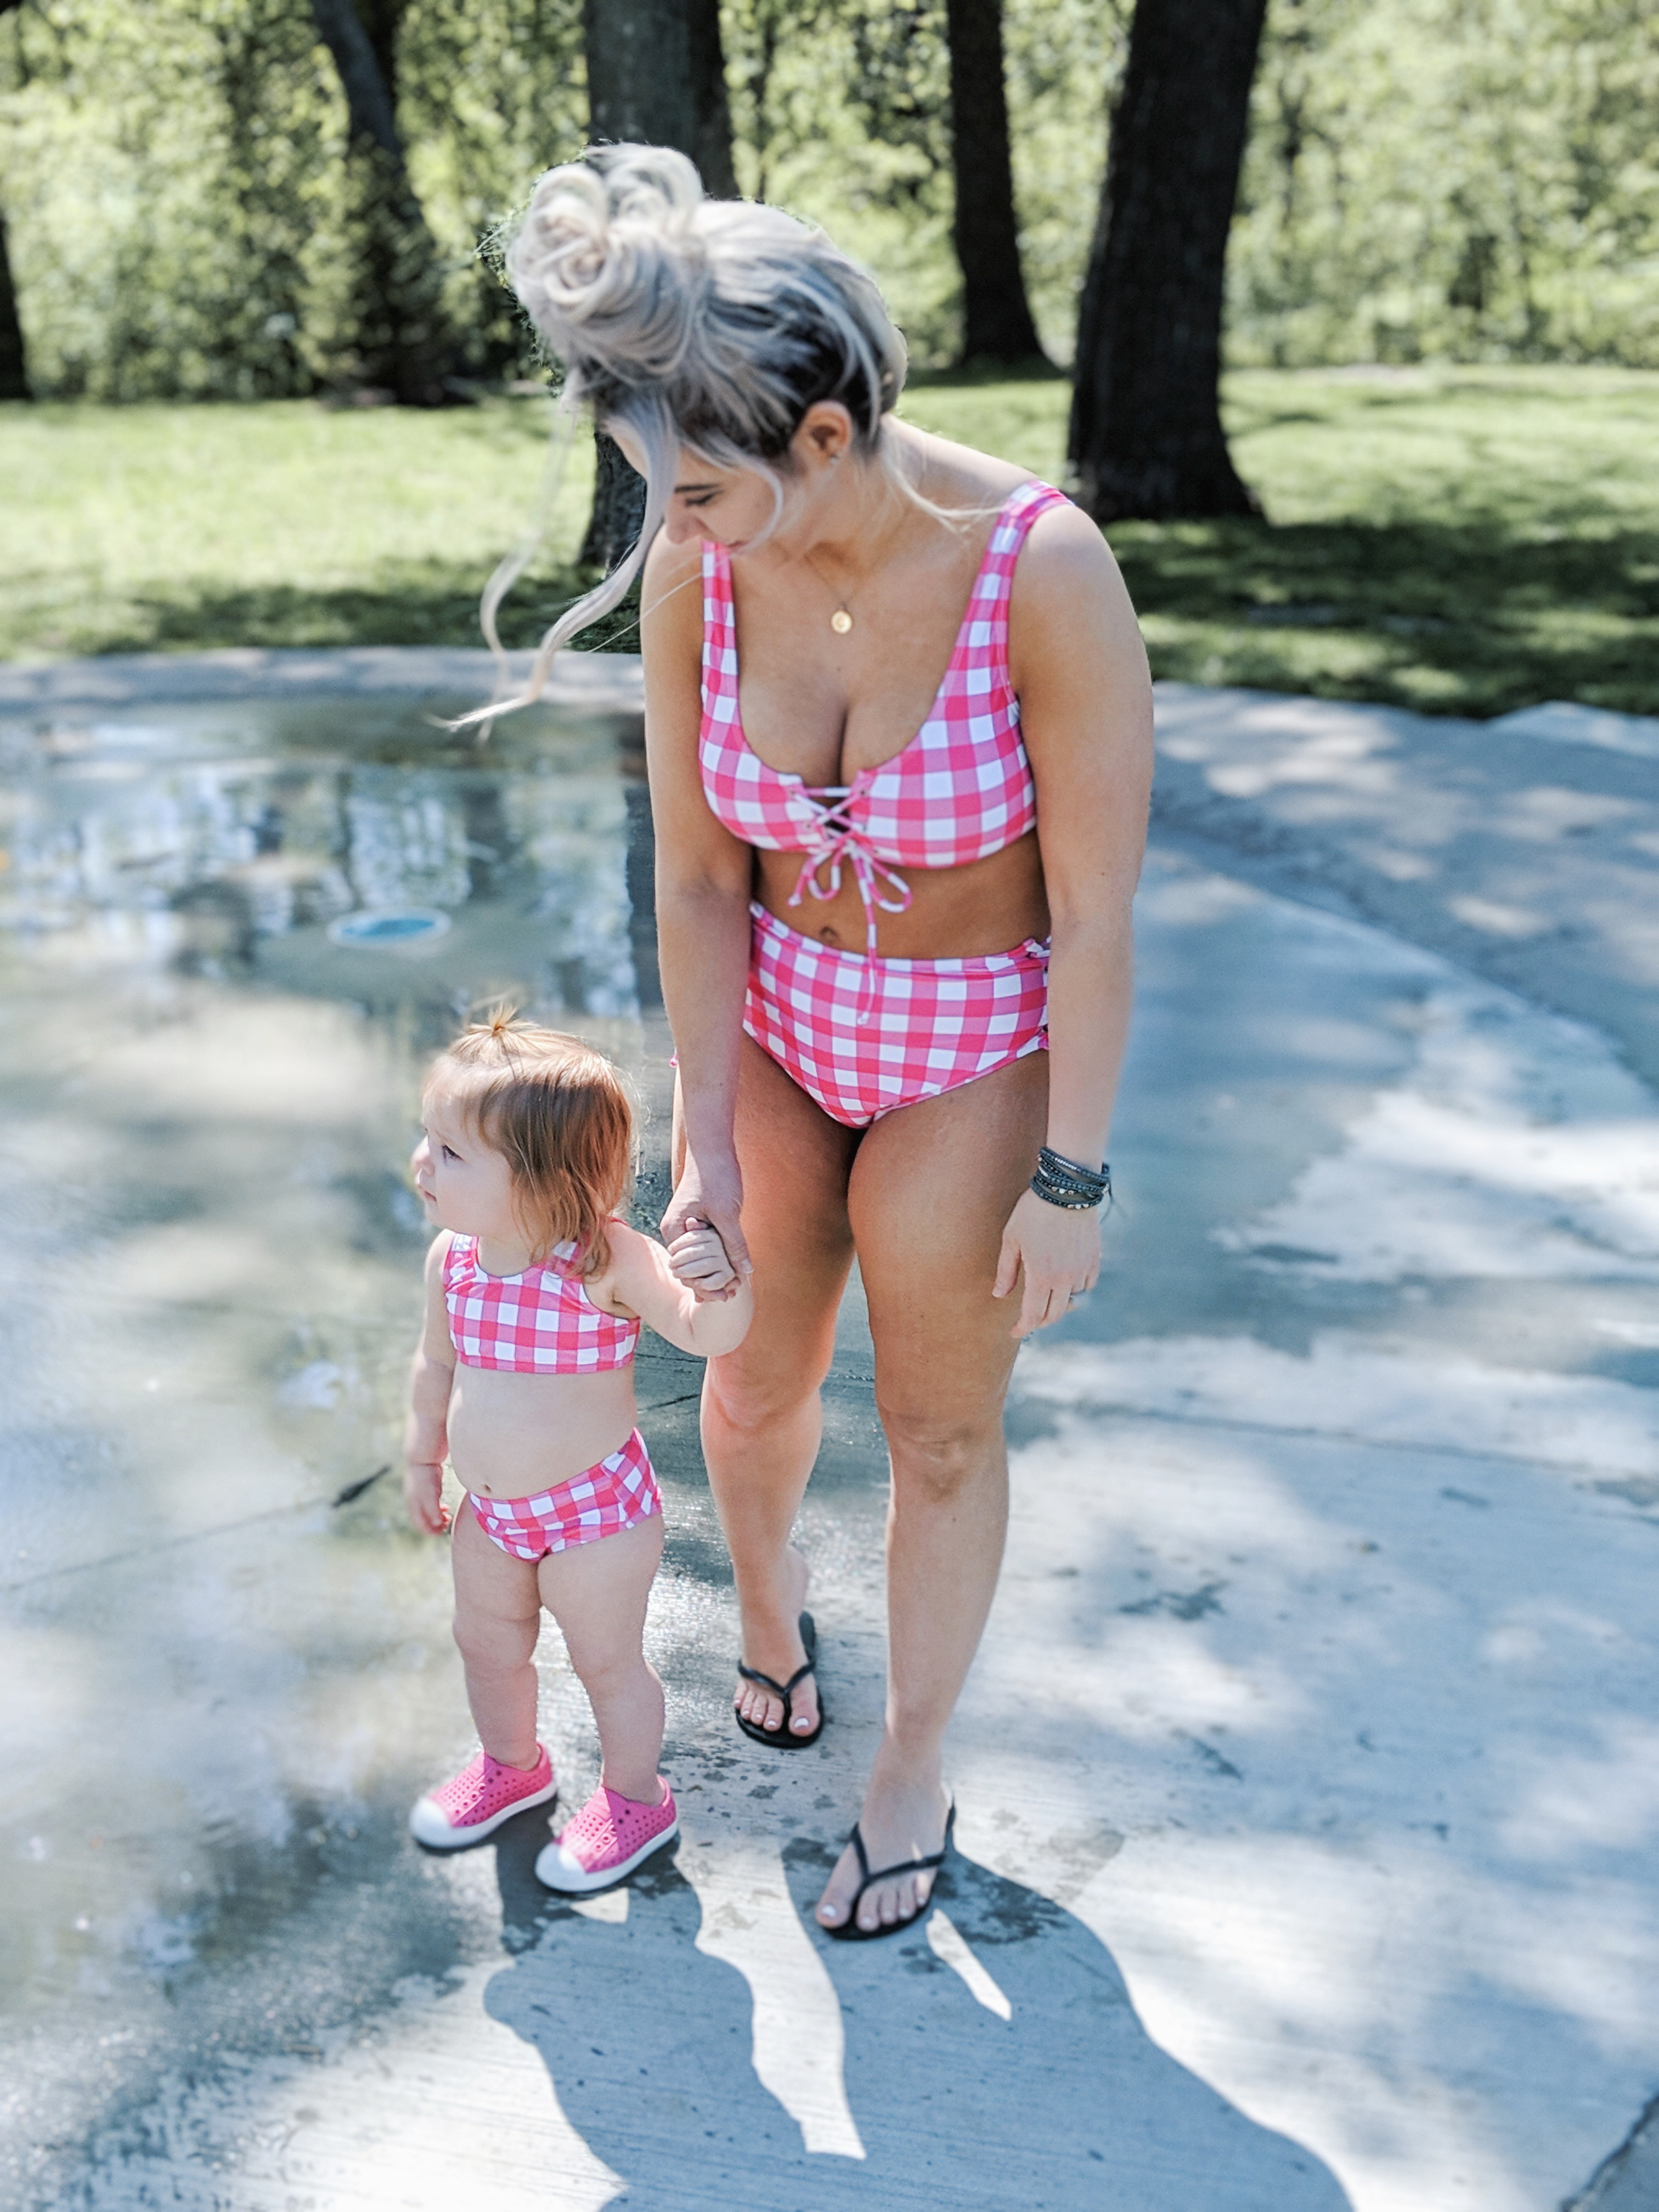 Mommy and Me Swimsuits Baby Girl: The cutest mommy and me swimsuits for baby girls! Featuring mommy and me one piece swimsuits and mommy and me bikini swimsuits so you'll find the best mommy and me swimwear for you and your mini me! Fashion blogger Tricia Nibarger of COVET by tricia showcases mommy and me swimsuits with her daughter. #mommyandme #girlmom #swimsuits